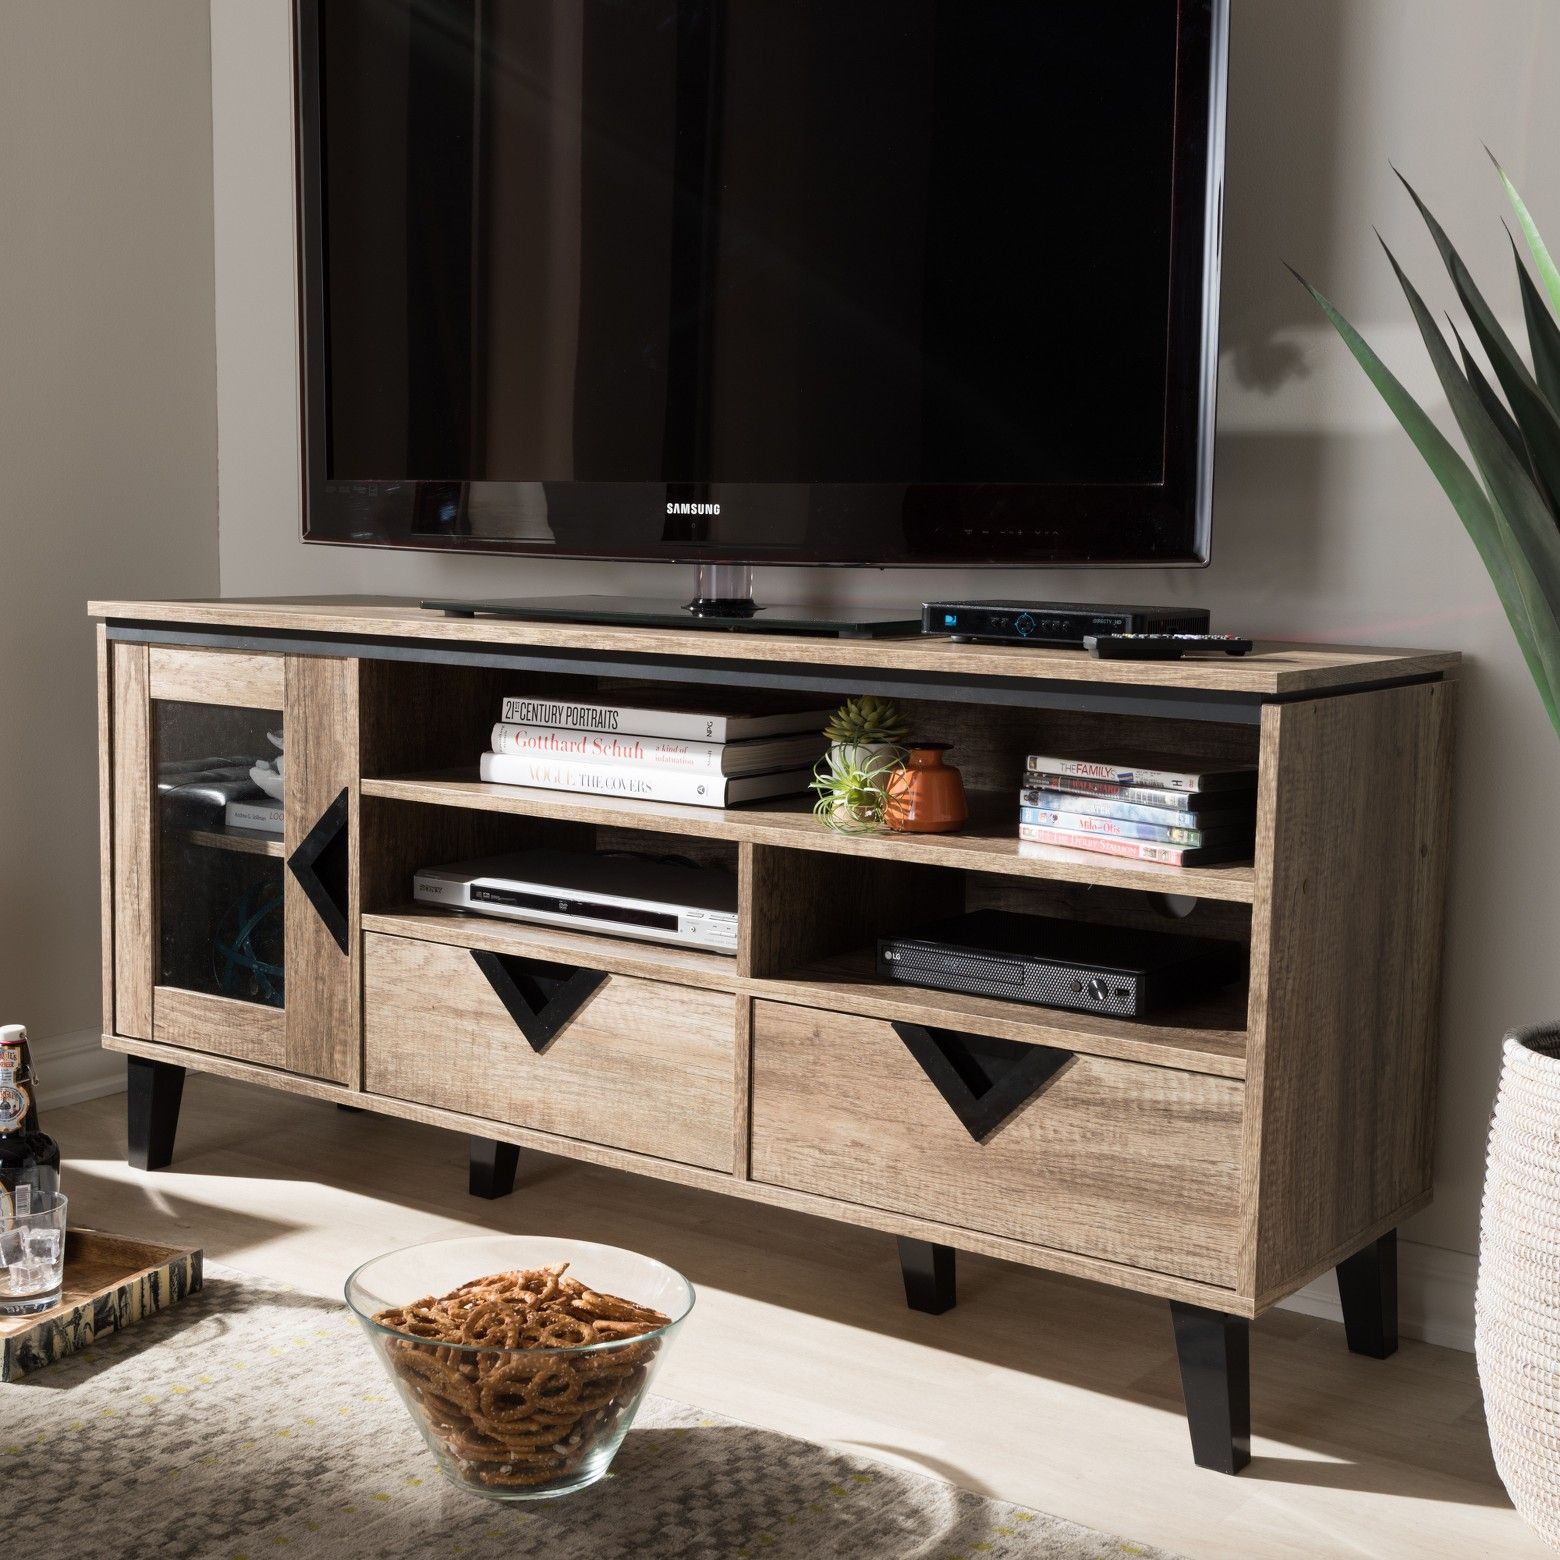 Flat Panel Tv Stand Baxton Studio Light Brown   Tv stands, Wood tv on repurpose old entertainment center, vanity entertainment center, kitchen entertainment center, hutch entertainment center, home entertainment center, credenza entertainment center, laptop entertainment center, bed entertainment center, bookshelves entertainment center, door entertainment center, refinishing entertainment center, shelving entertainment center, book entertainment center, room entertainment center, kitchenette entertainment center, samurai entertainment center, bench entertainment center, farm entertainment center, office entertainment center, glass entertainment center,